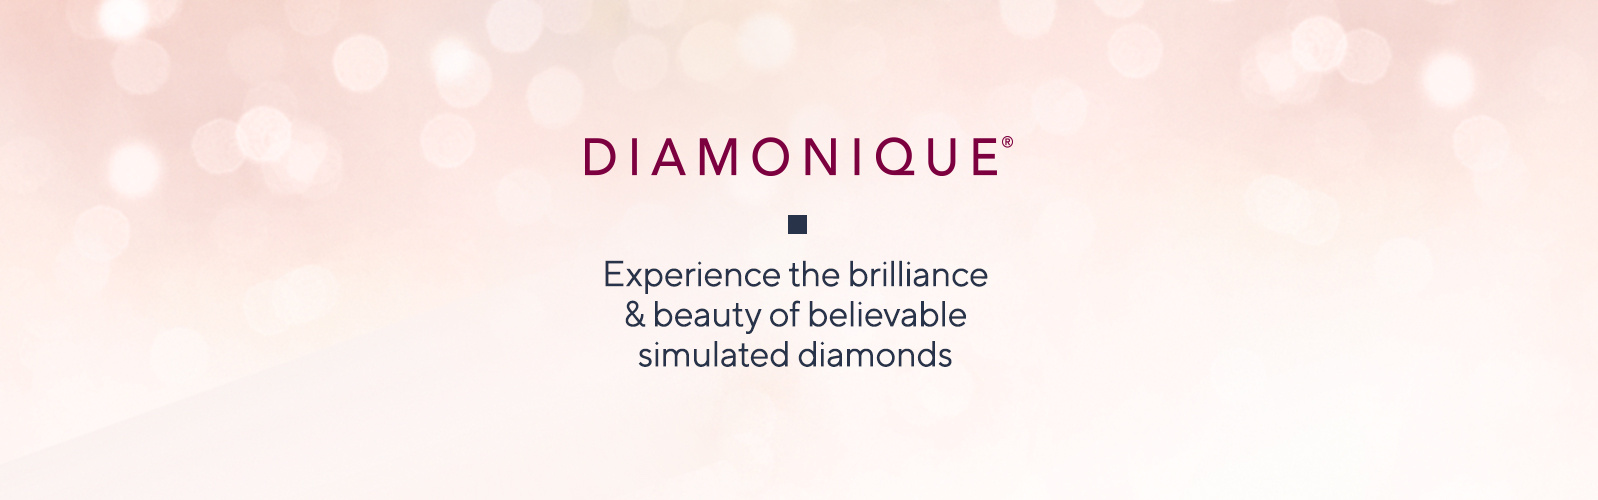 Diamonique — QVC com